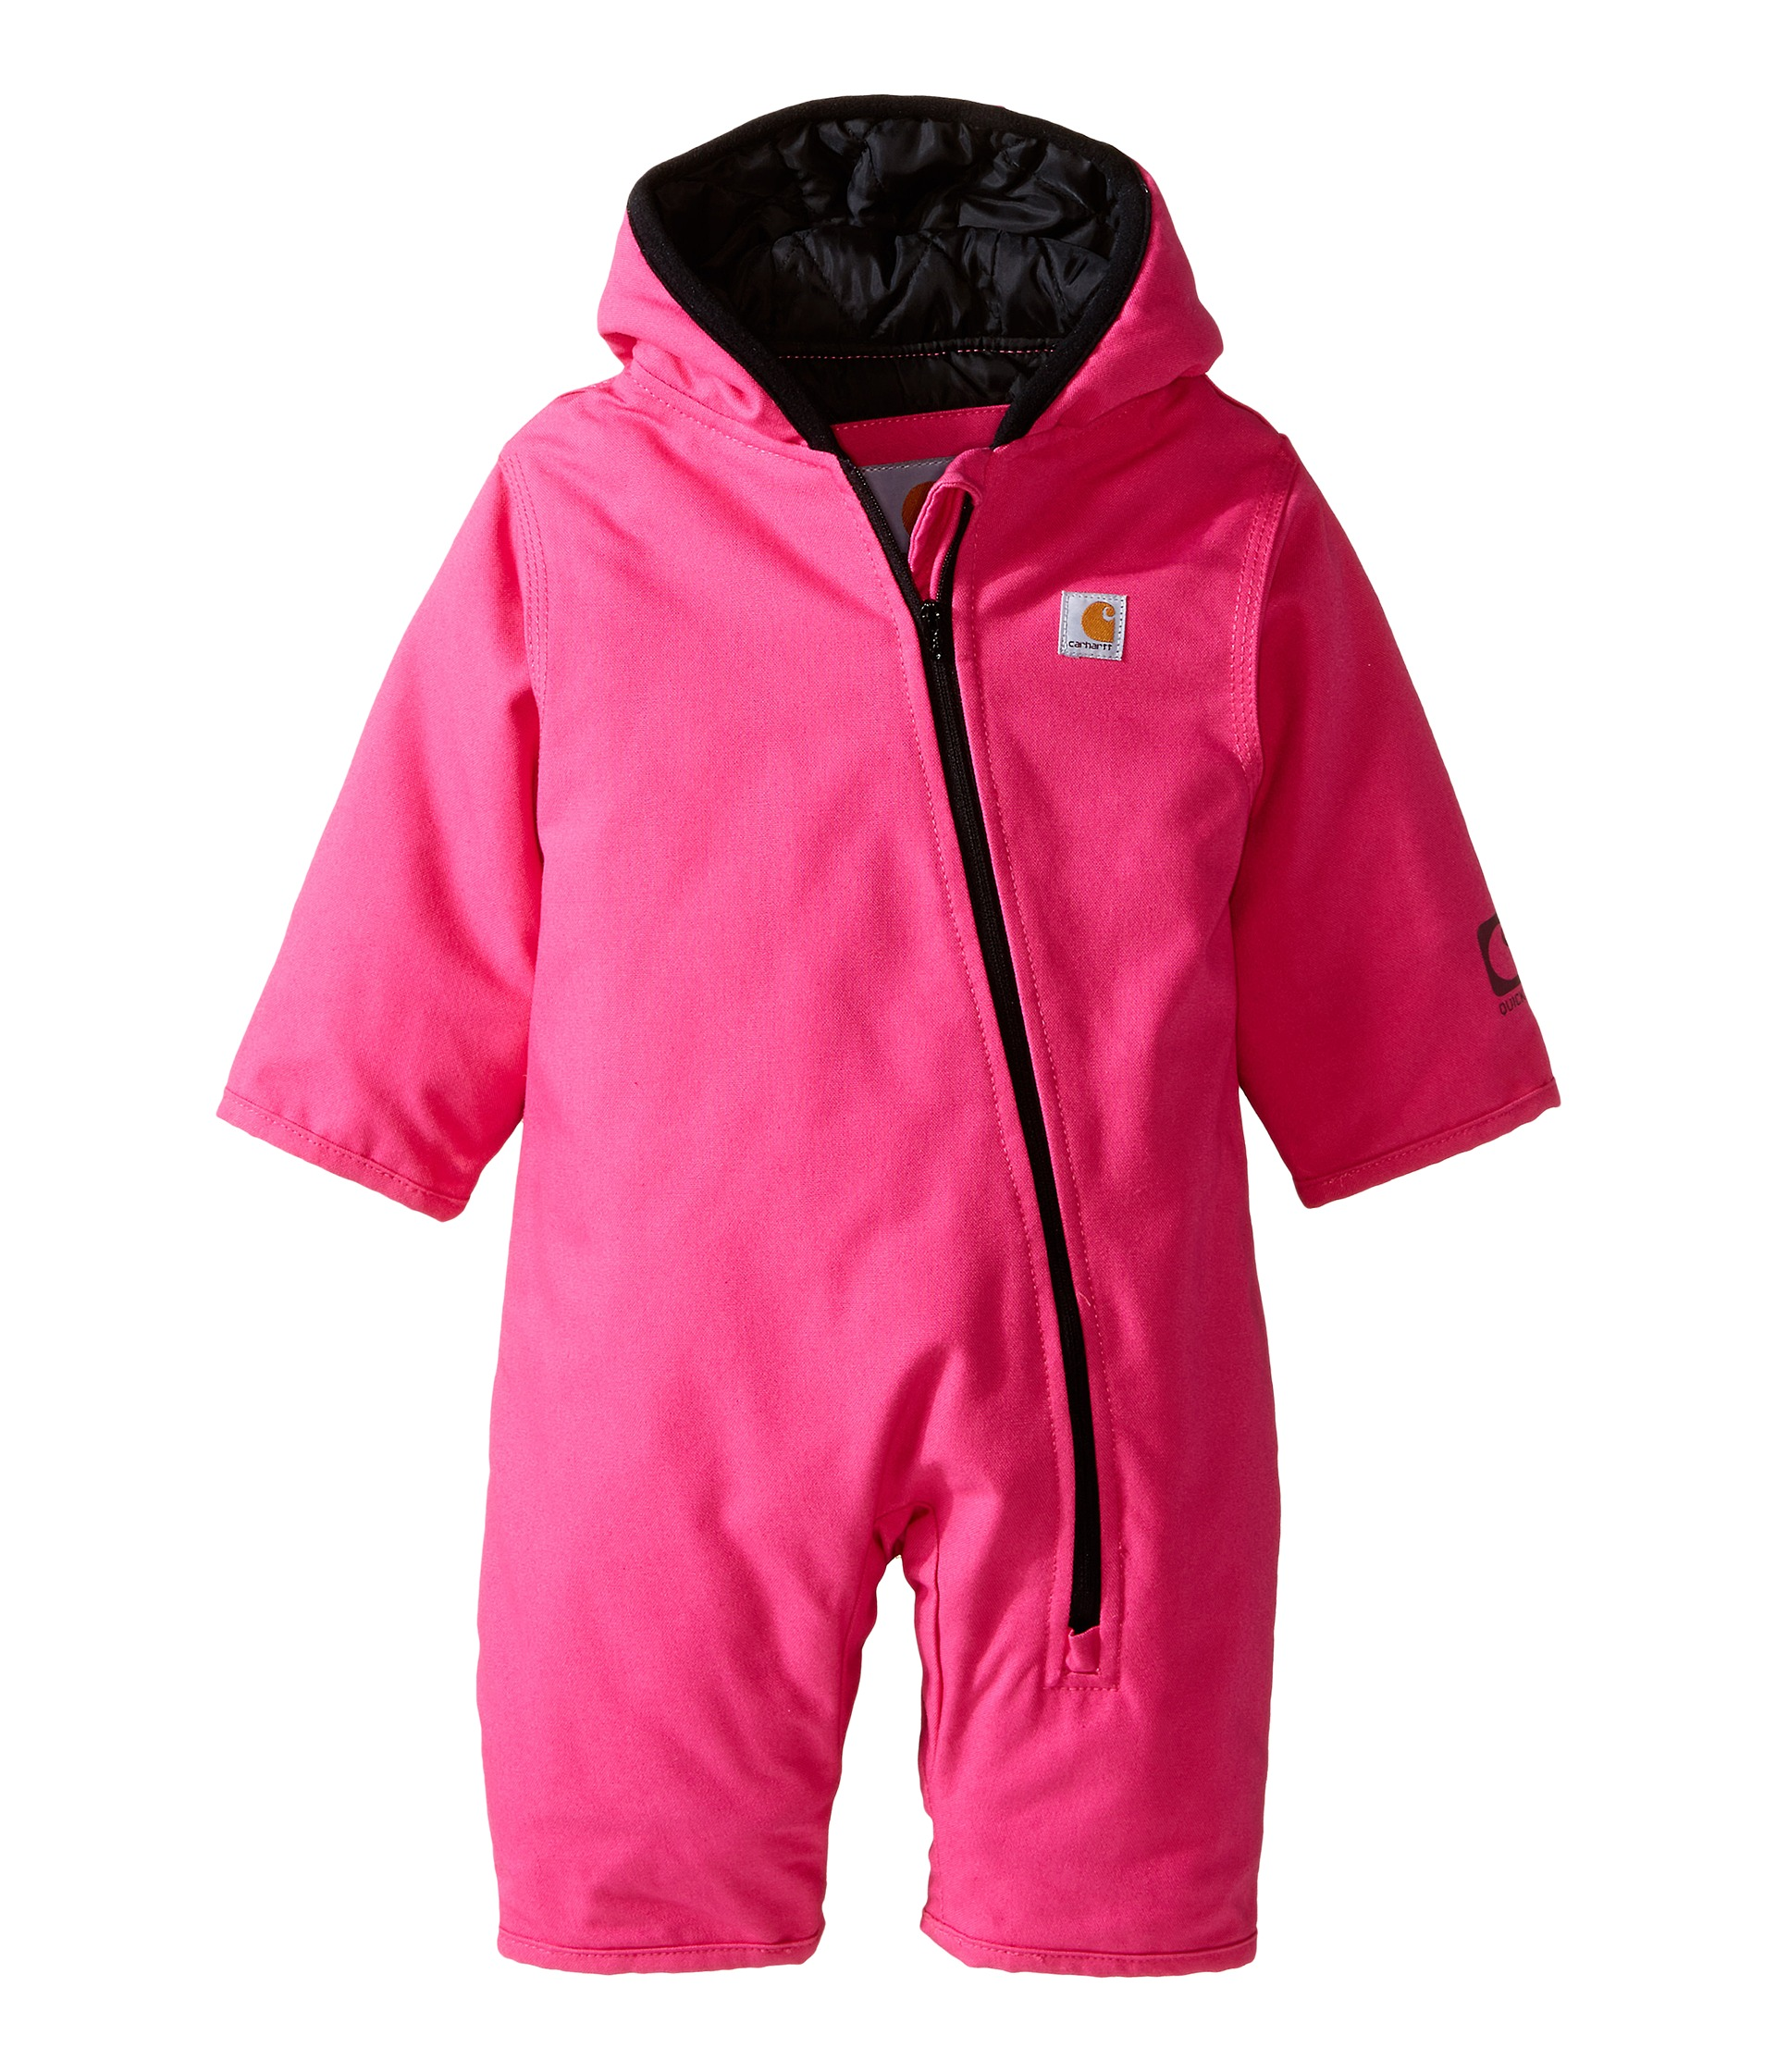 Kids' Animal Hooded Robes. Childrenswear Up to 60% Sign up today to start shopping designer clothes, accessories, beauty and homeware, all up to 70% off. It's time to indulge in iconic luxury. All-American fashion powerhouse Michael Kors is back to tempt you with another edit of luxurious watches. Choose to glitter with crystals or.